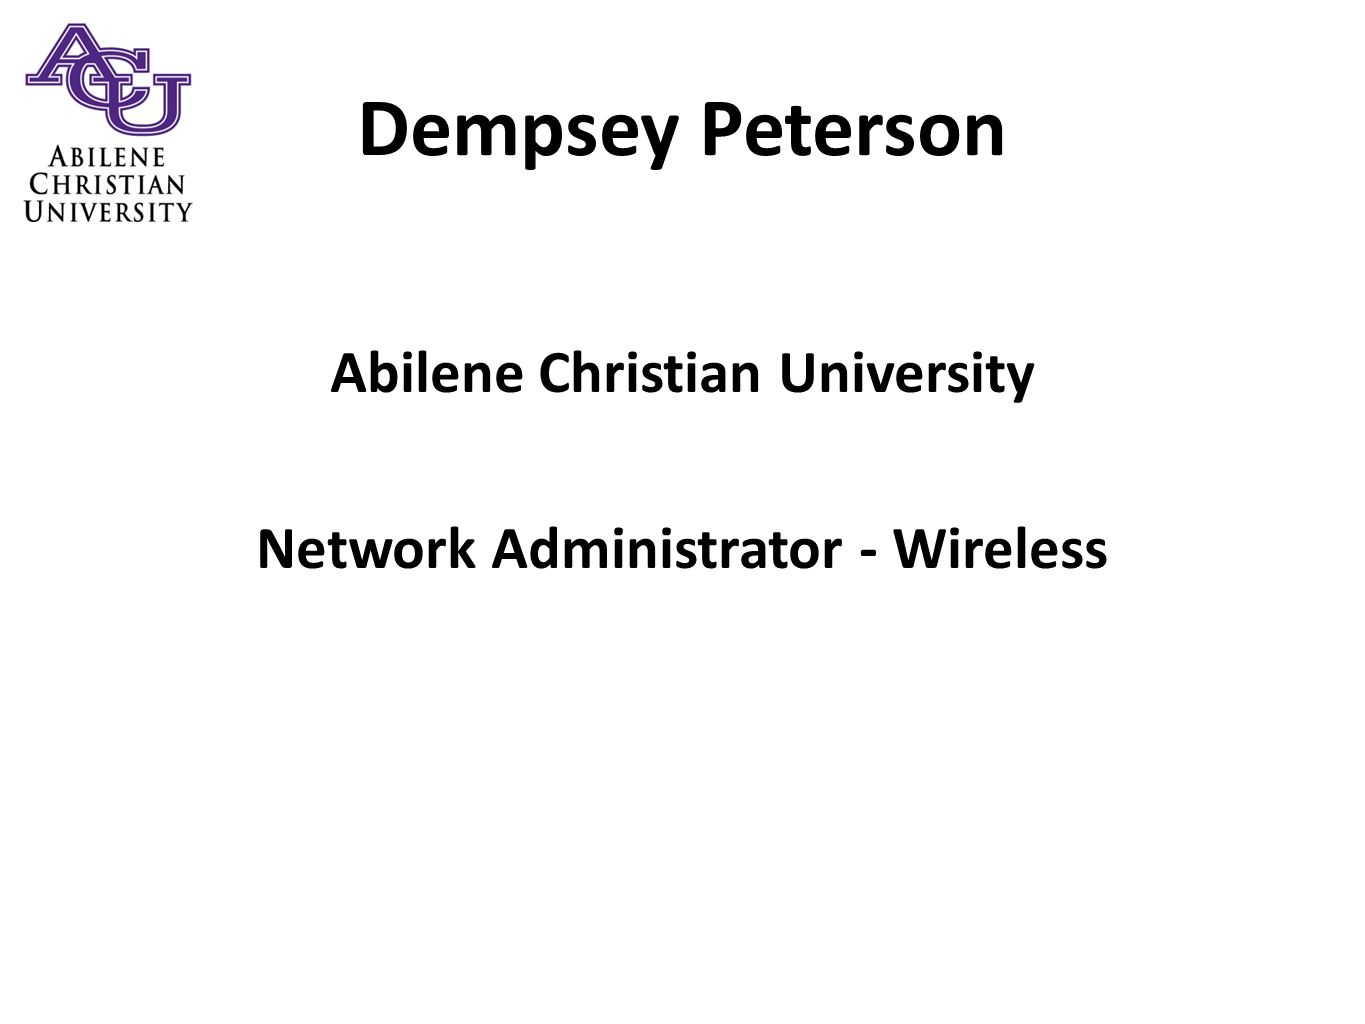 Dempsey Peterson Abilene Christian University Network Administrator - Wireless